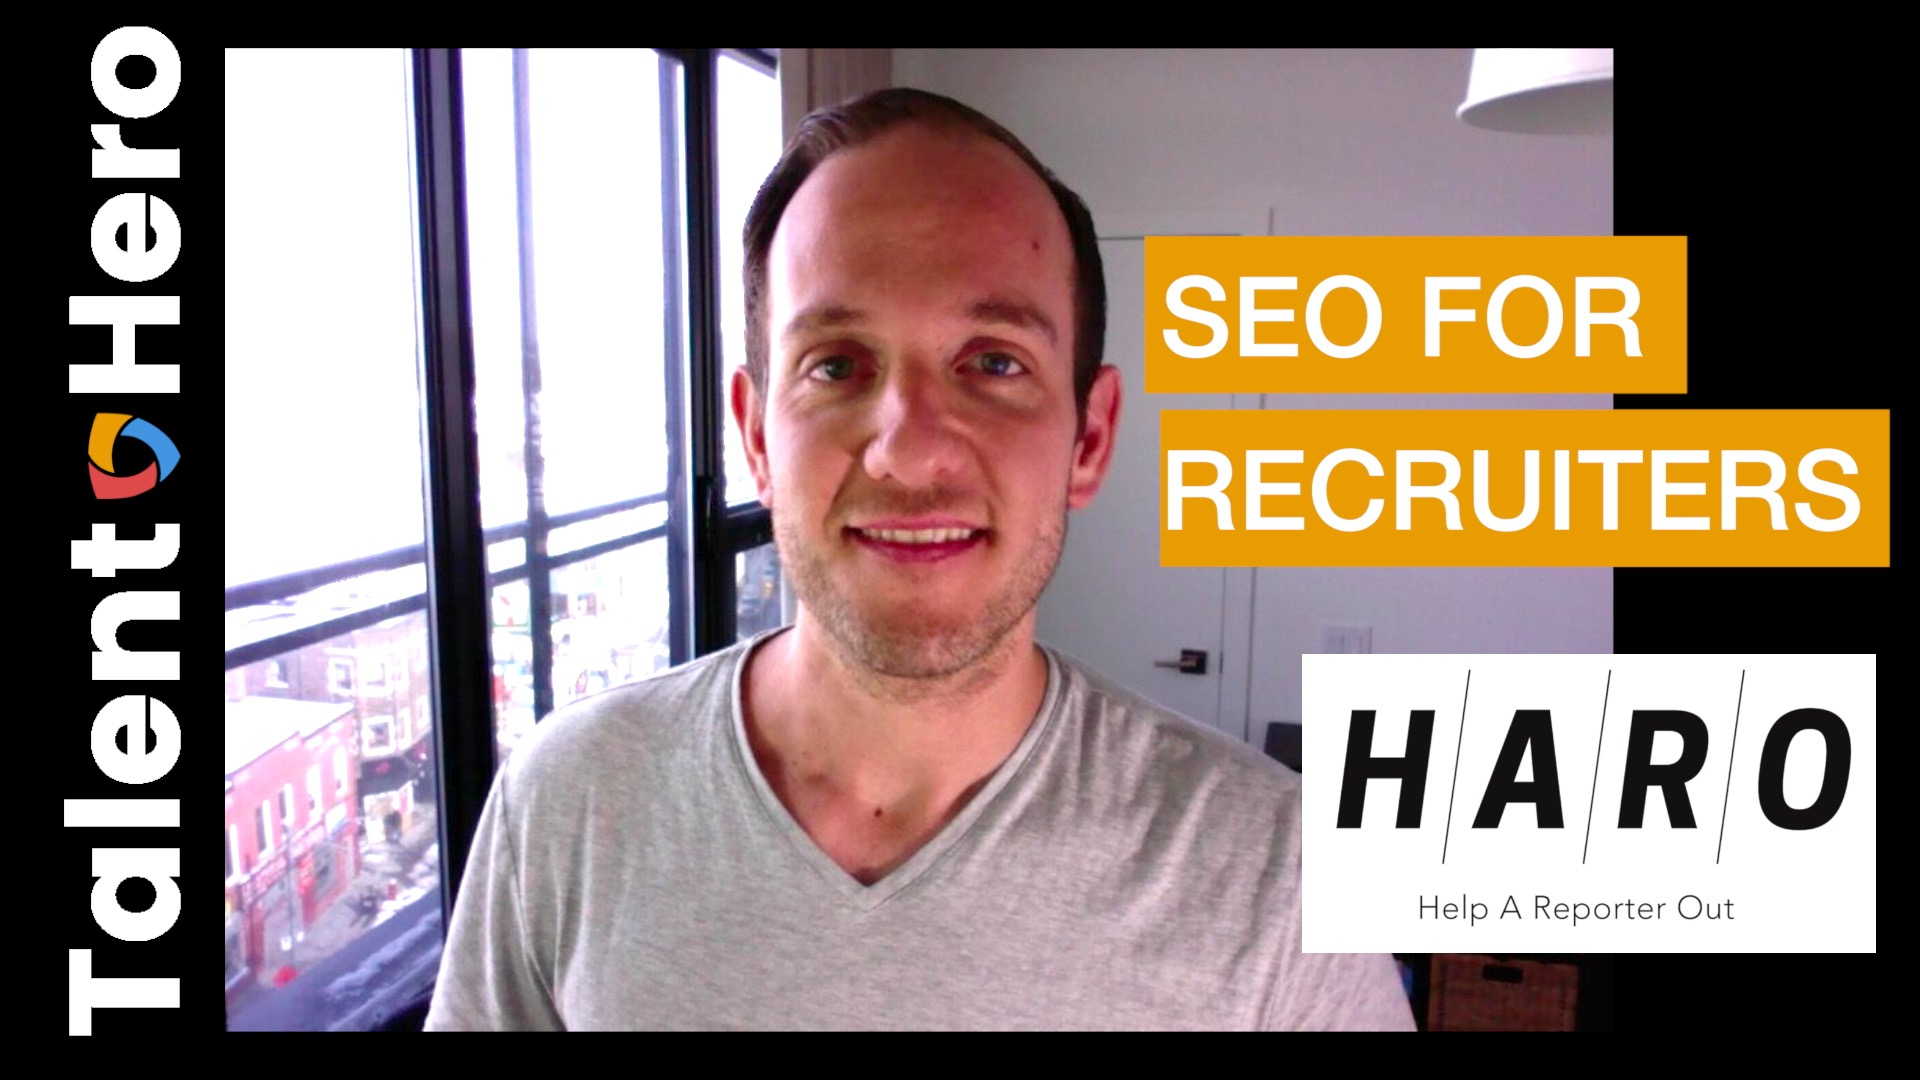 SEO For Recruiters - HARO Thumbnail